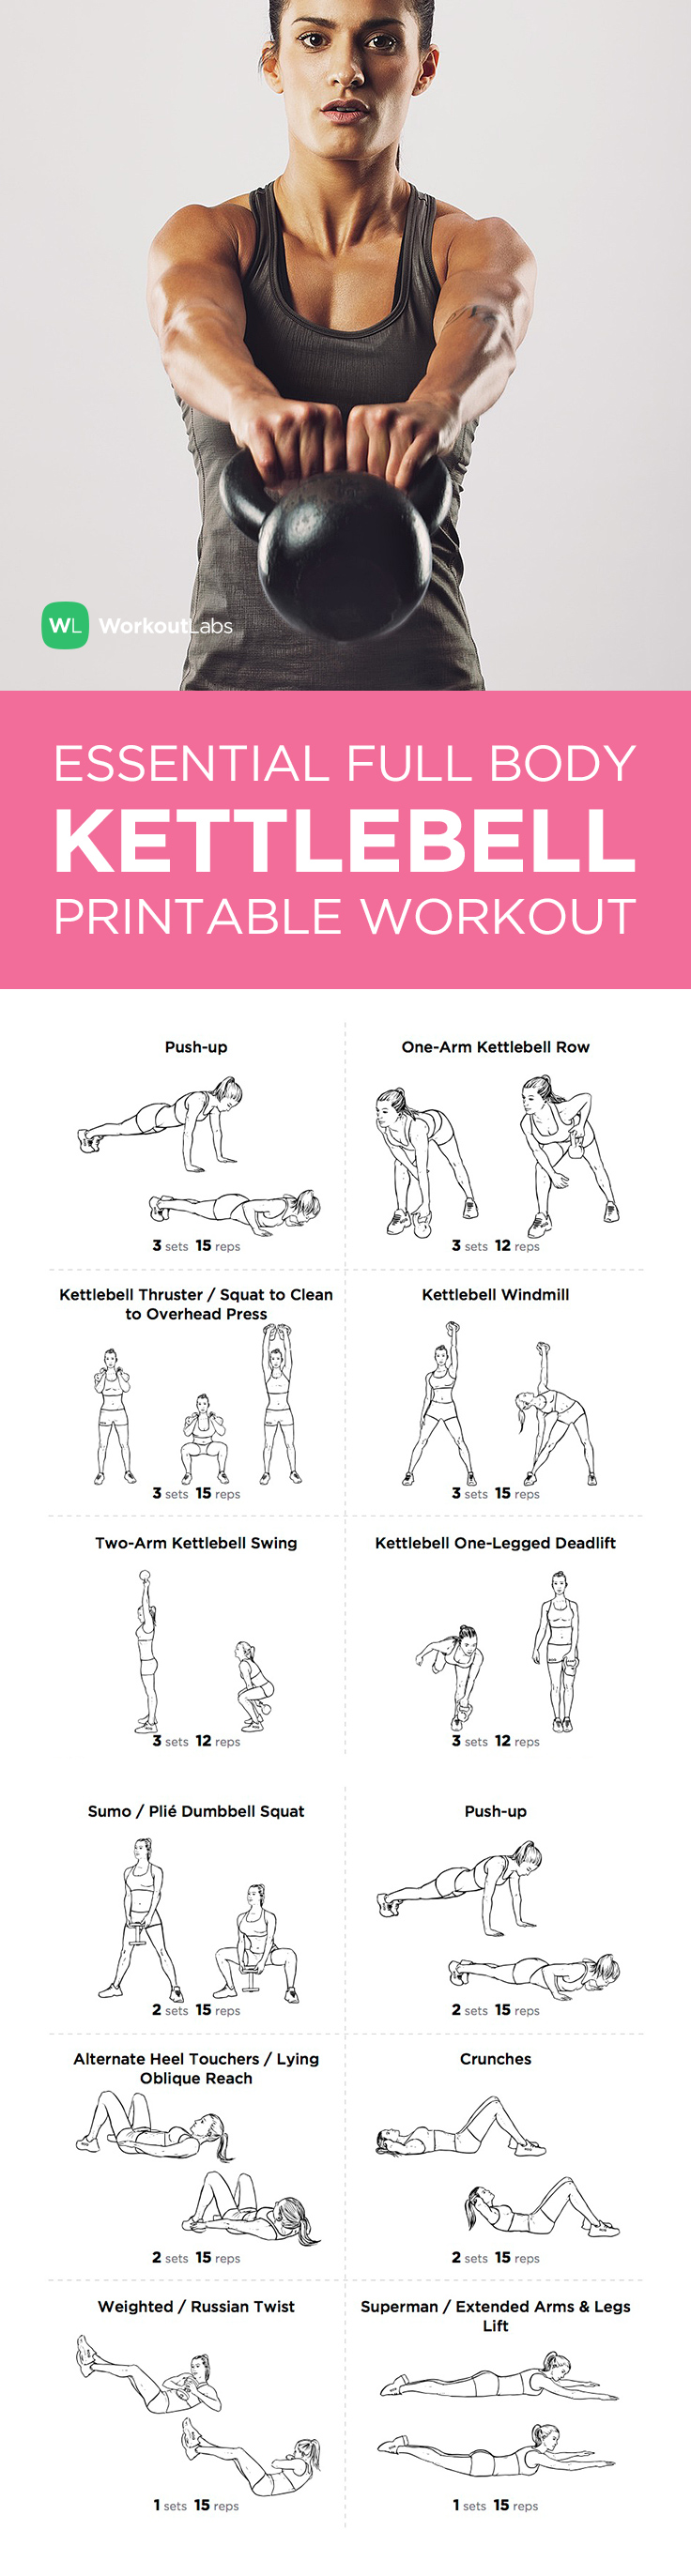 Free PDF Essential Full Body Kettlebell Printable Workout For Women And Men